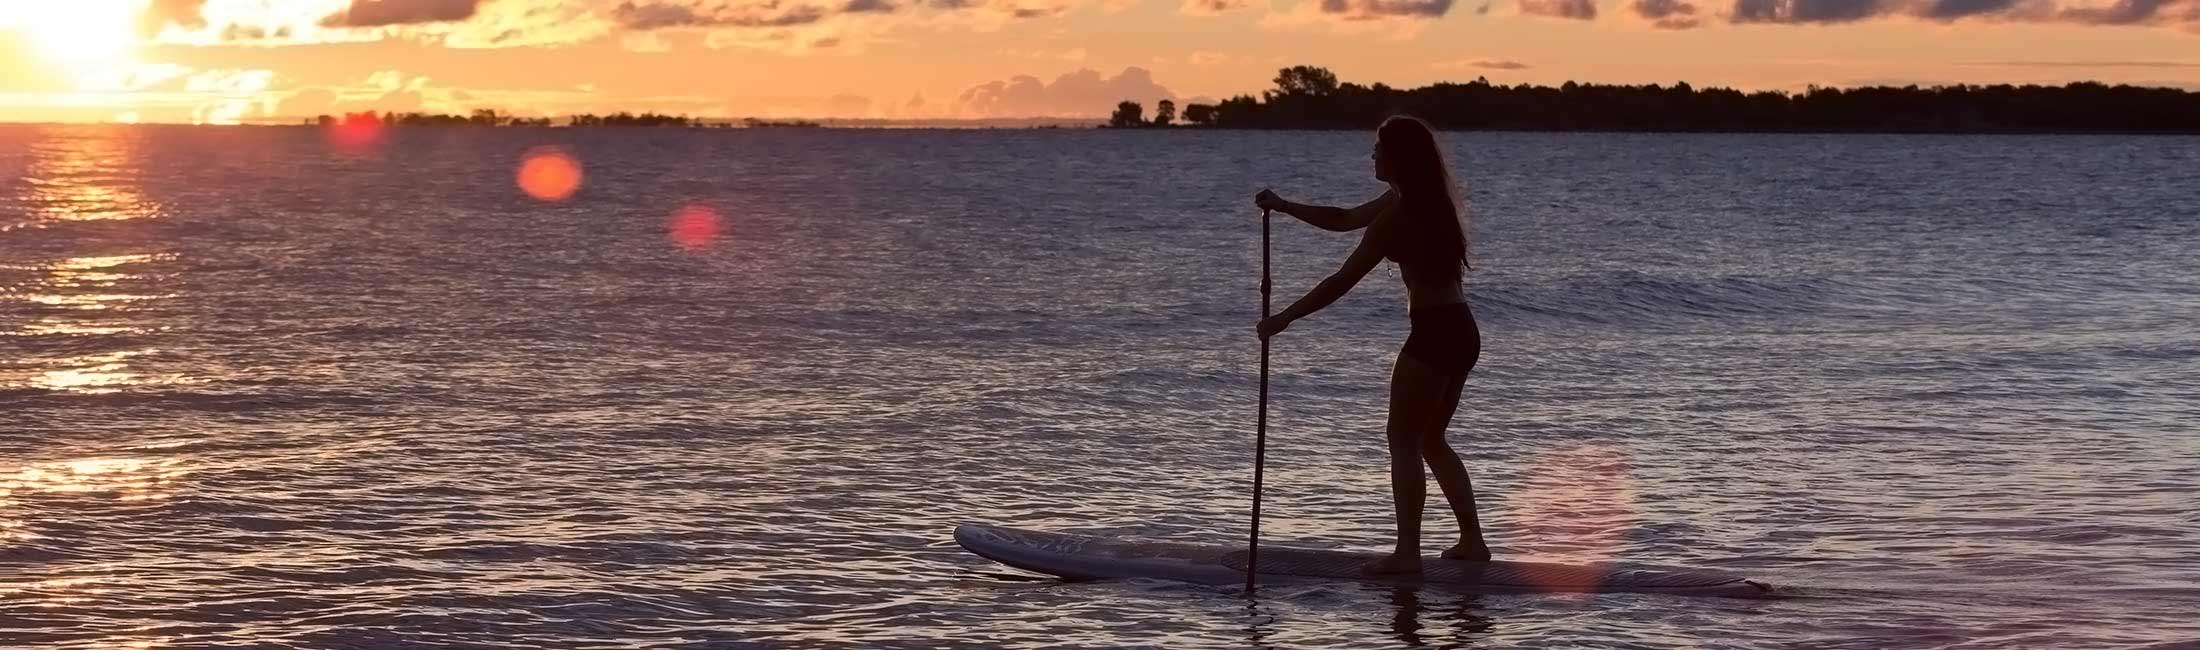 Tubing & Stand-Up Paddleboarding